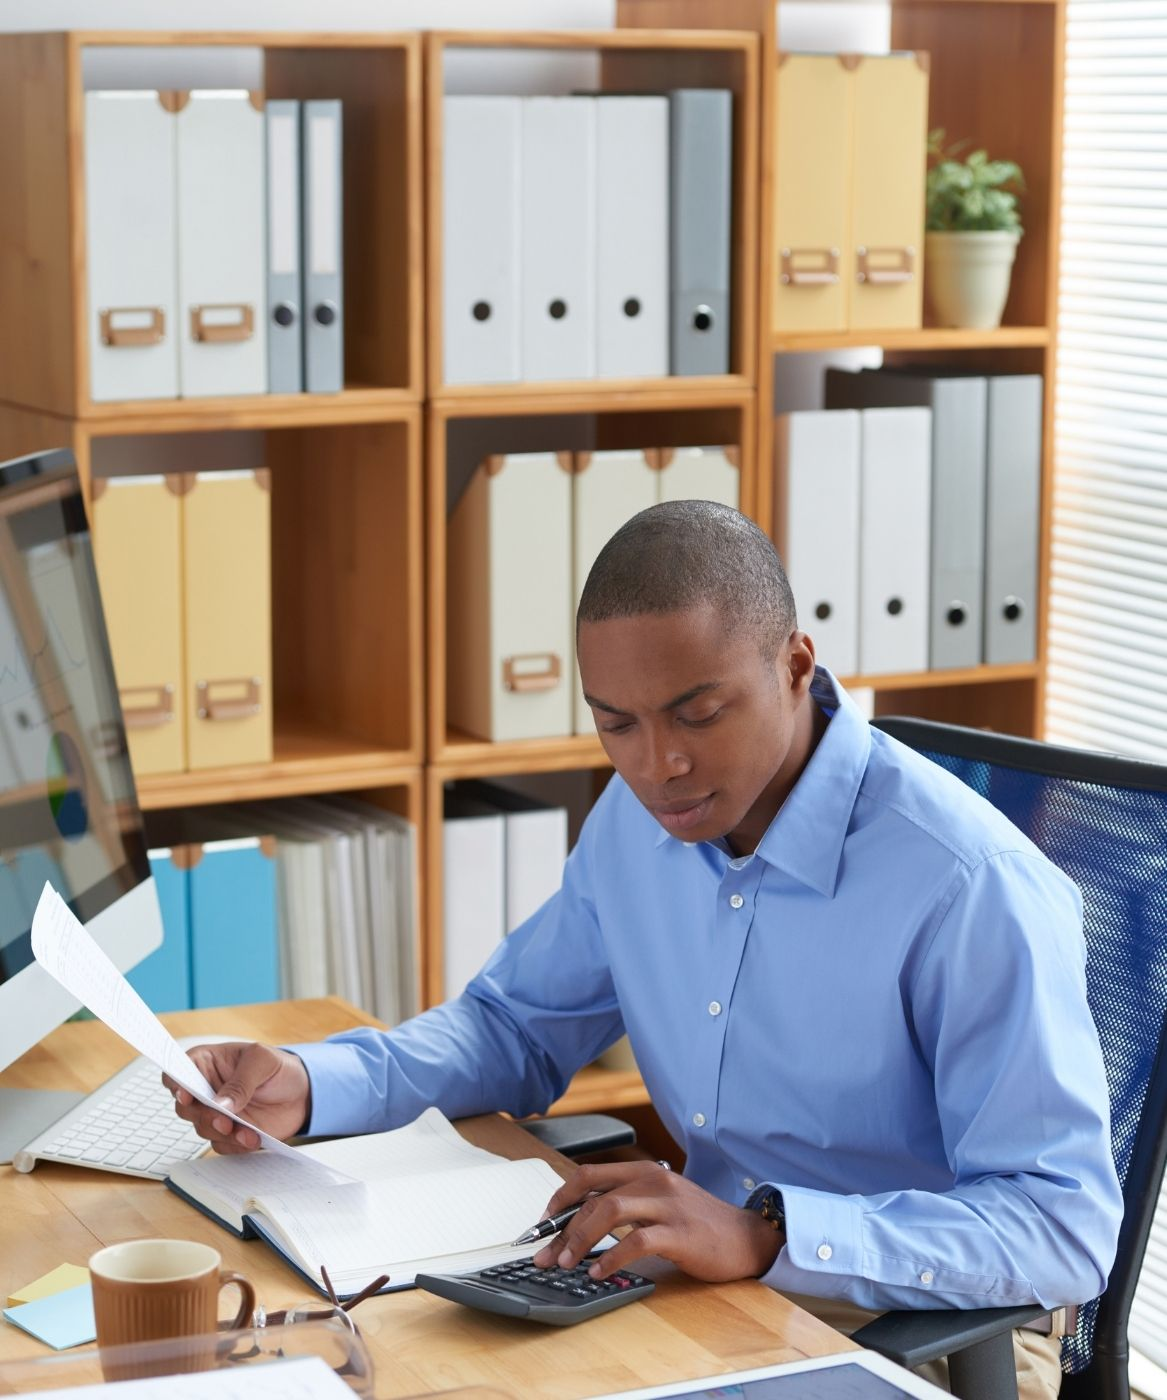 An accountant working on company books in an office